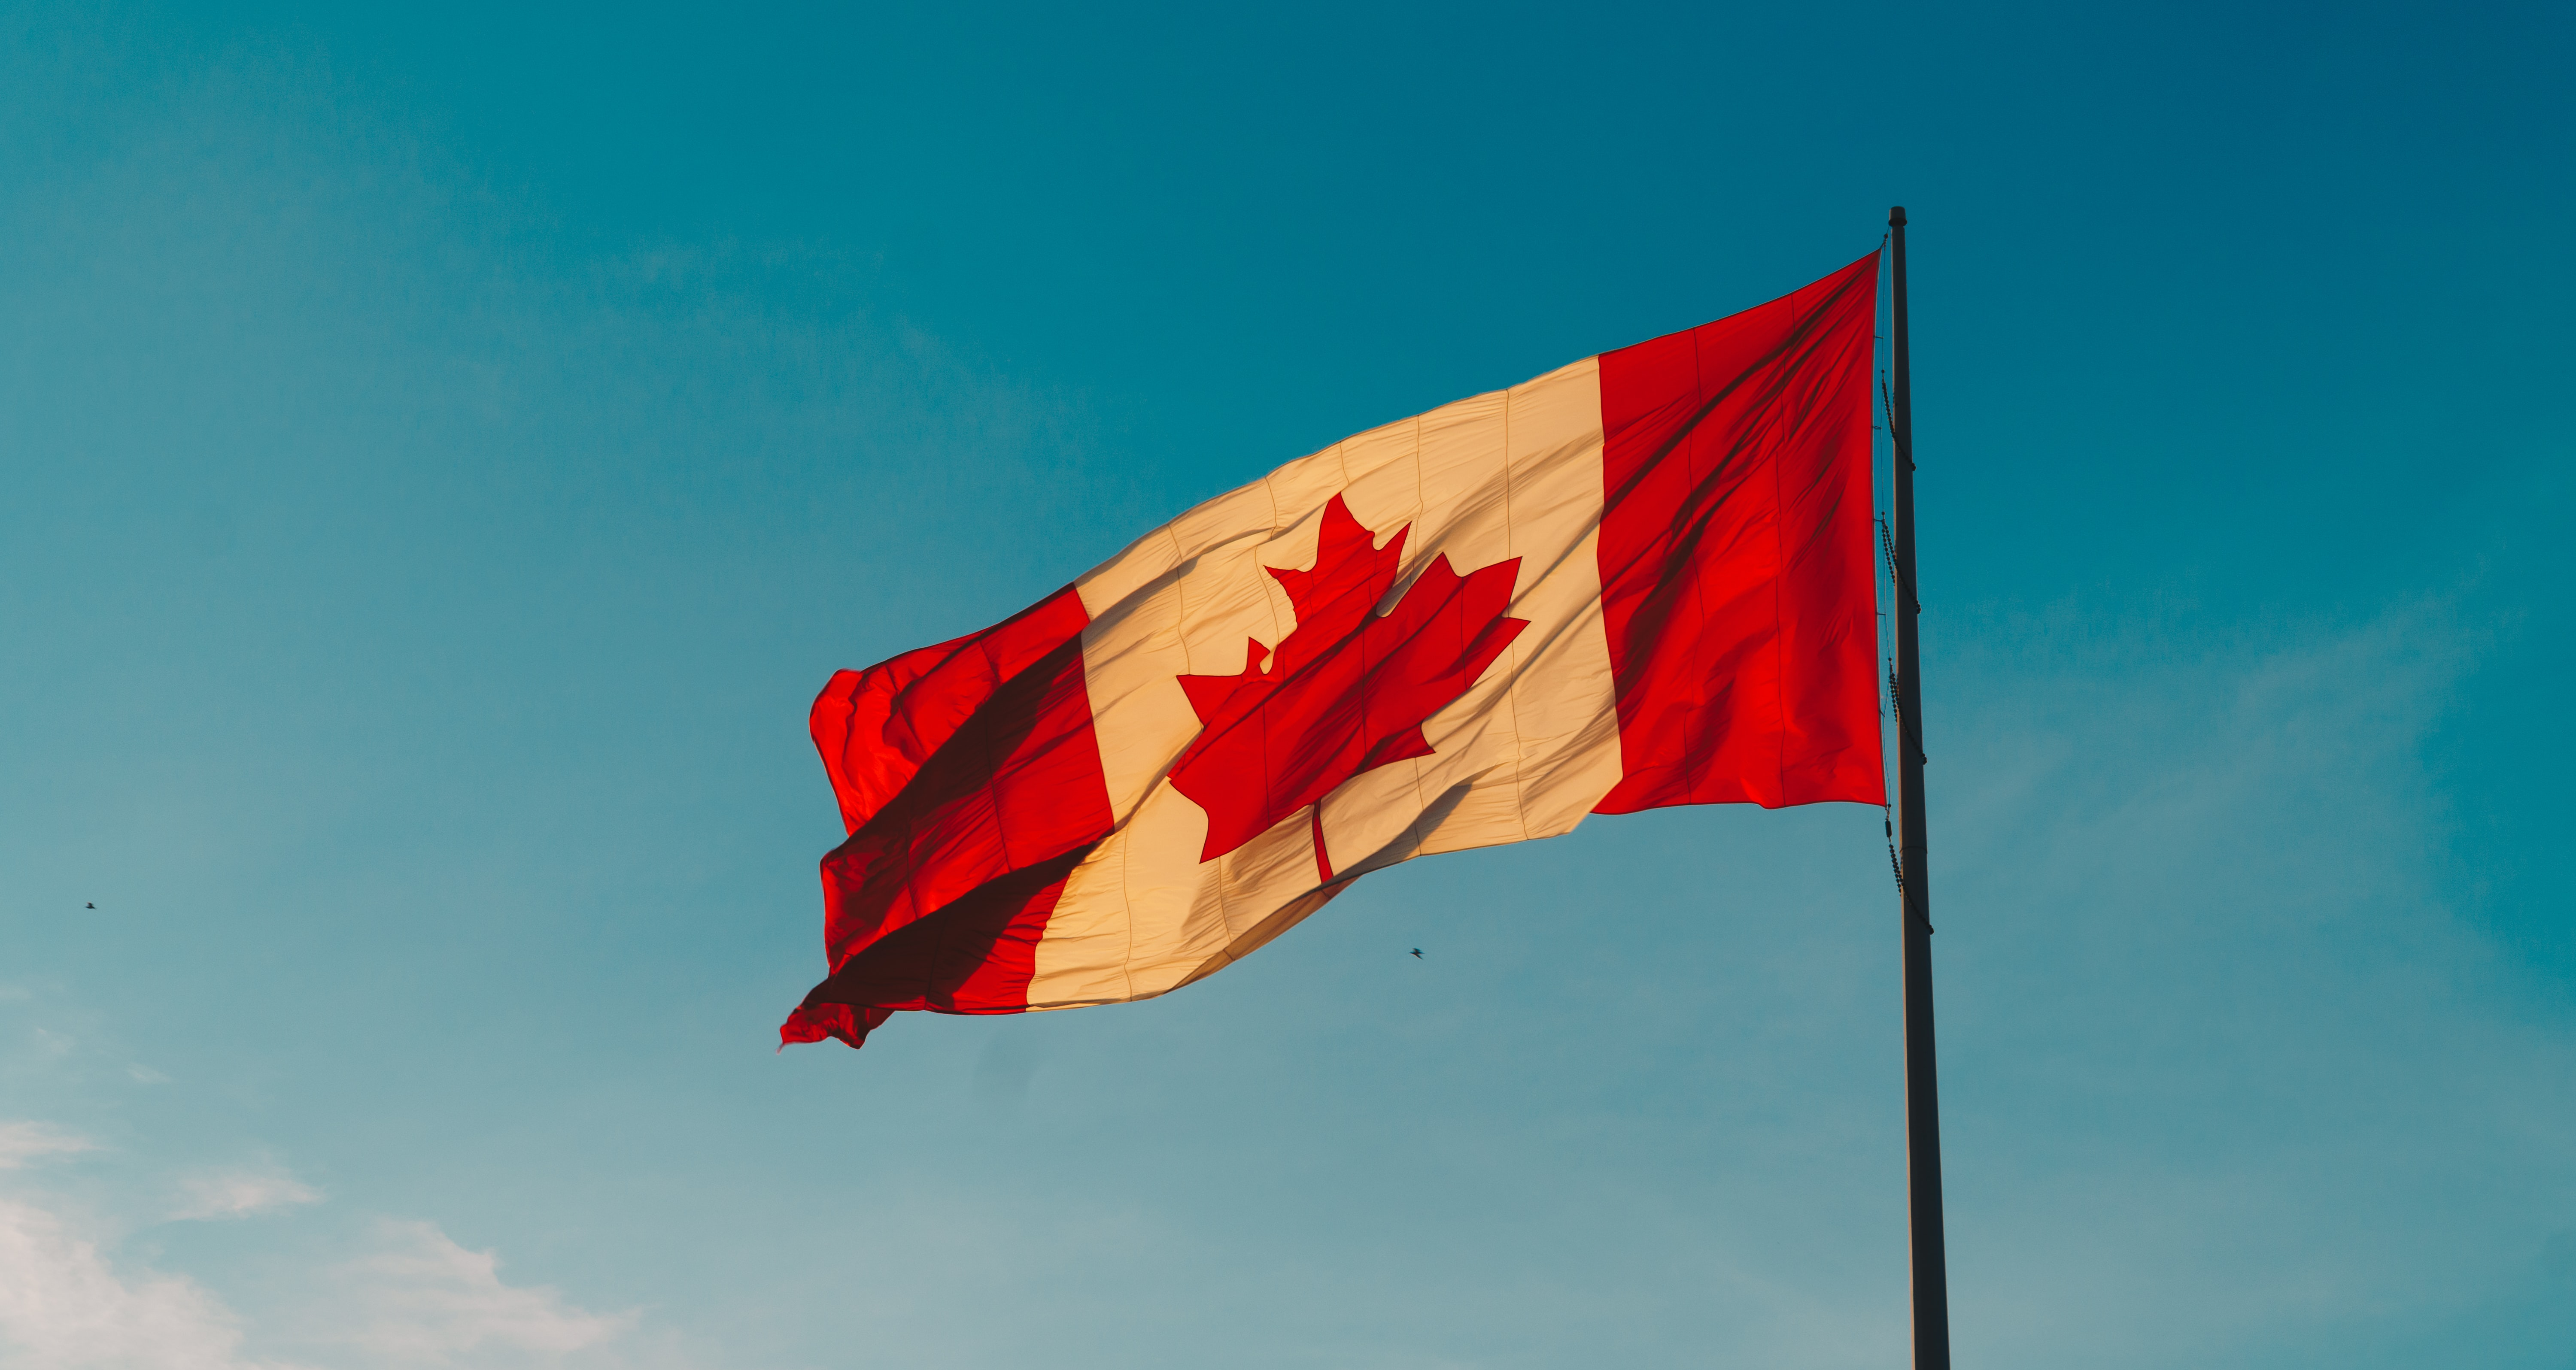 Studying in Canada: Tips for applying to Canadian universities